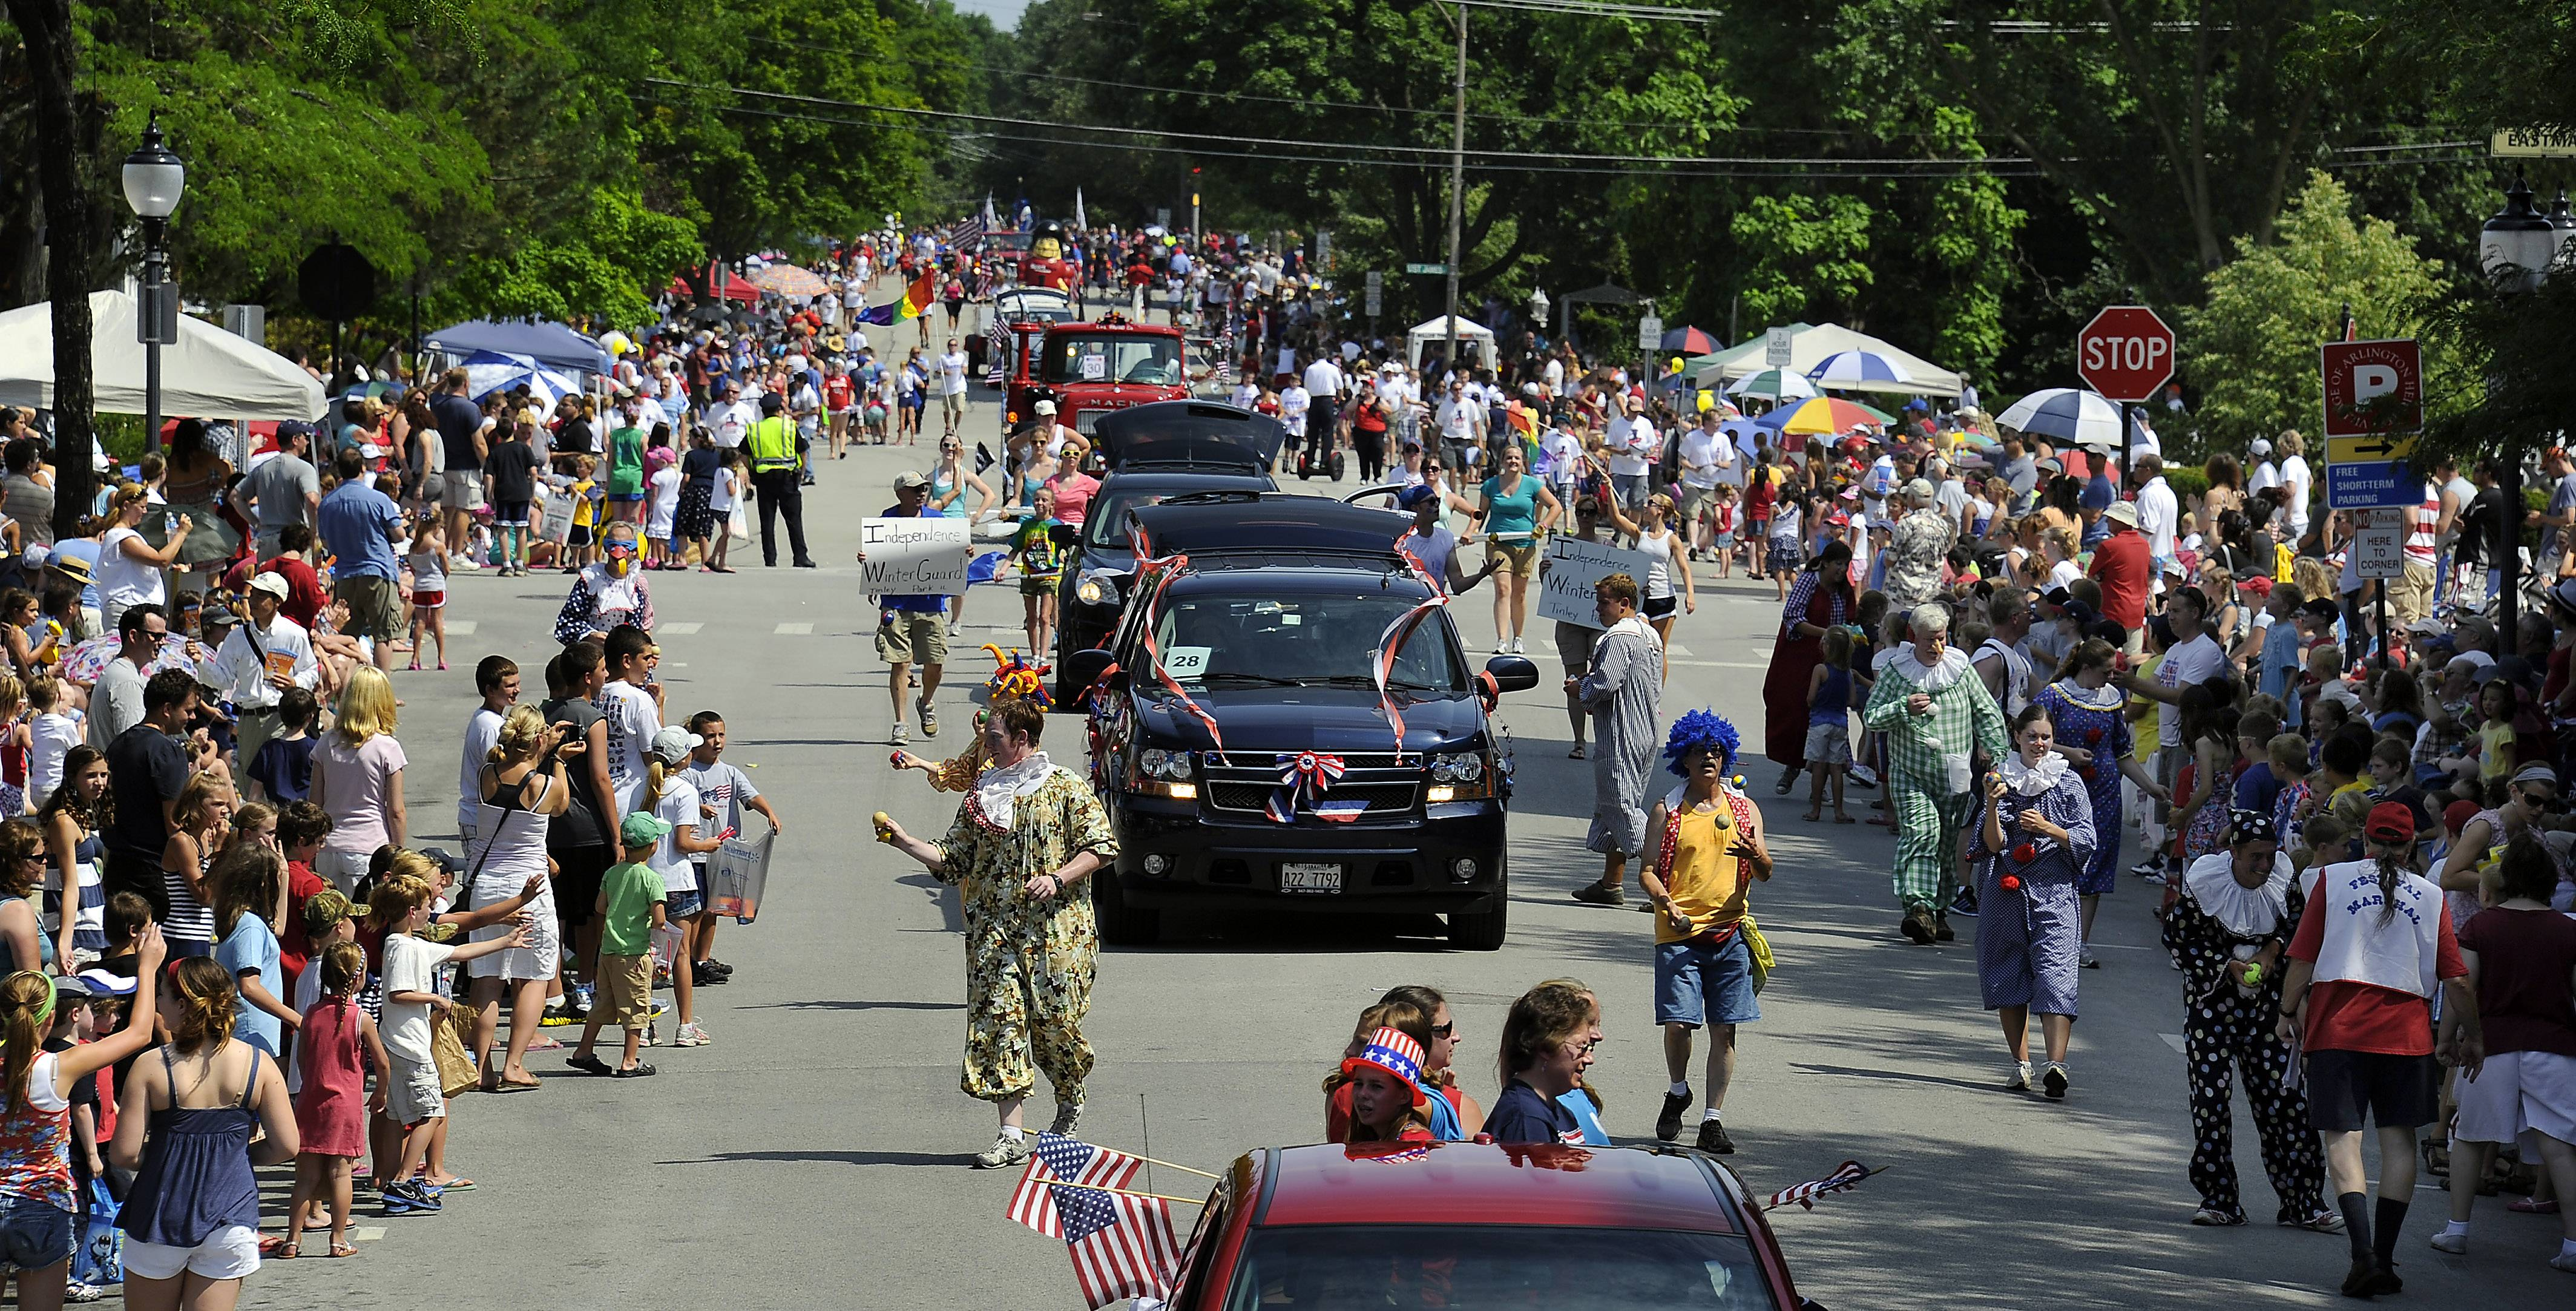 A mass of humanity floods the streets during the Fourth of July parade in Arlington Heights.